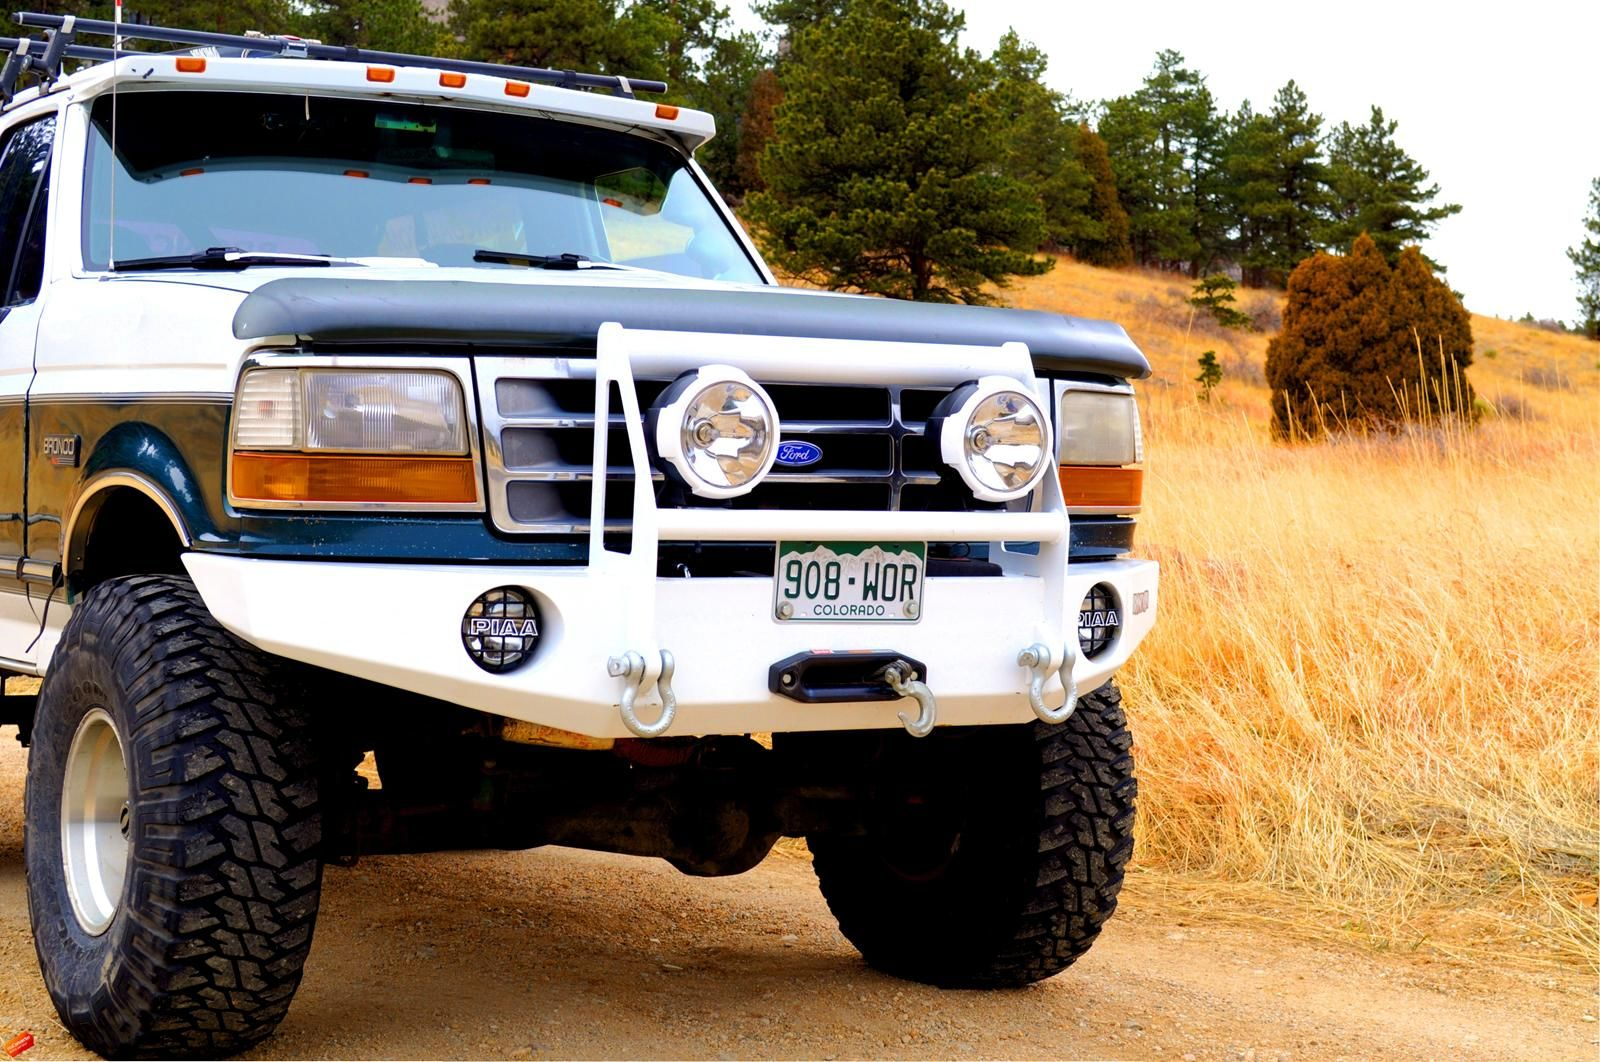 bronco bumper ford 96 winch bumpers f150 92 front custom 1995 guard brush trucks f250 duty truck f350 extreme grille